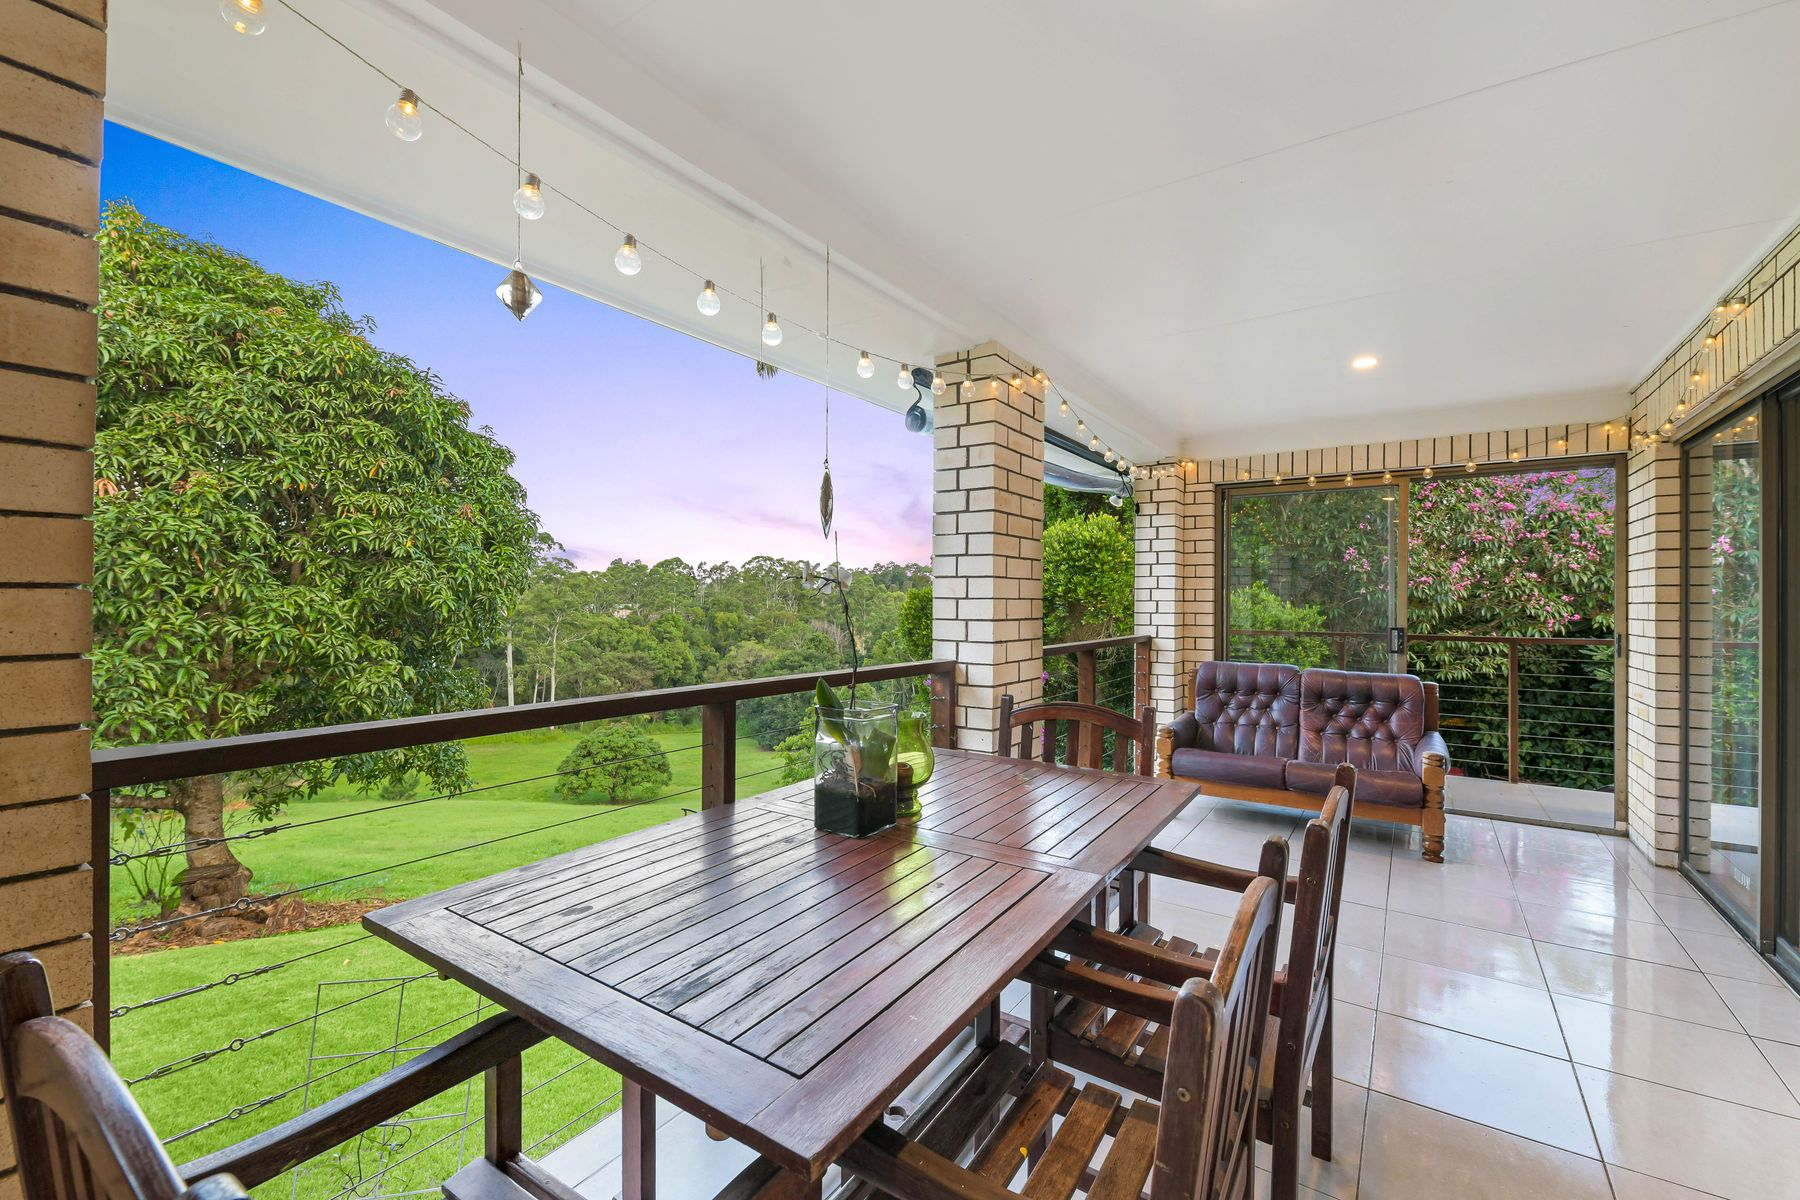 5 Laidlaw Road North, Coes Creek, QLD 4560